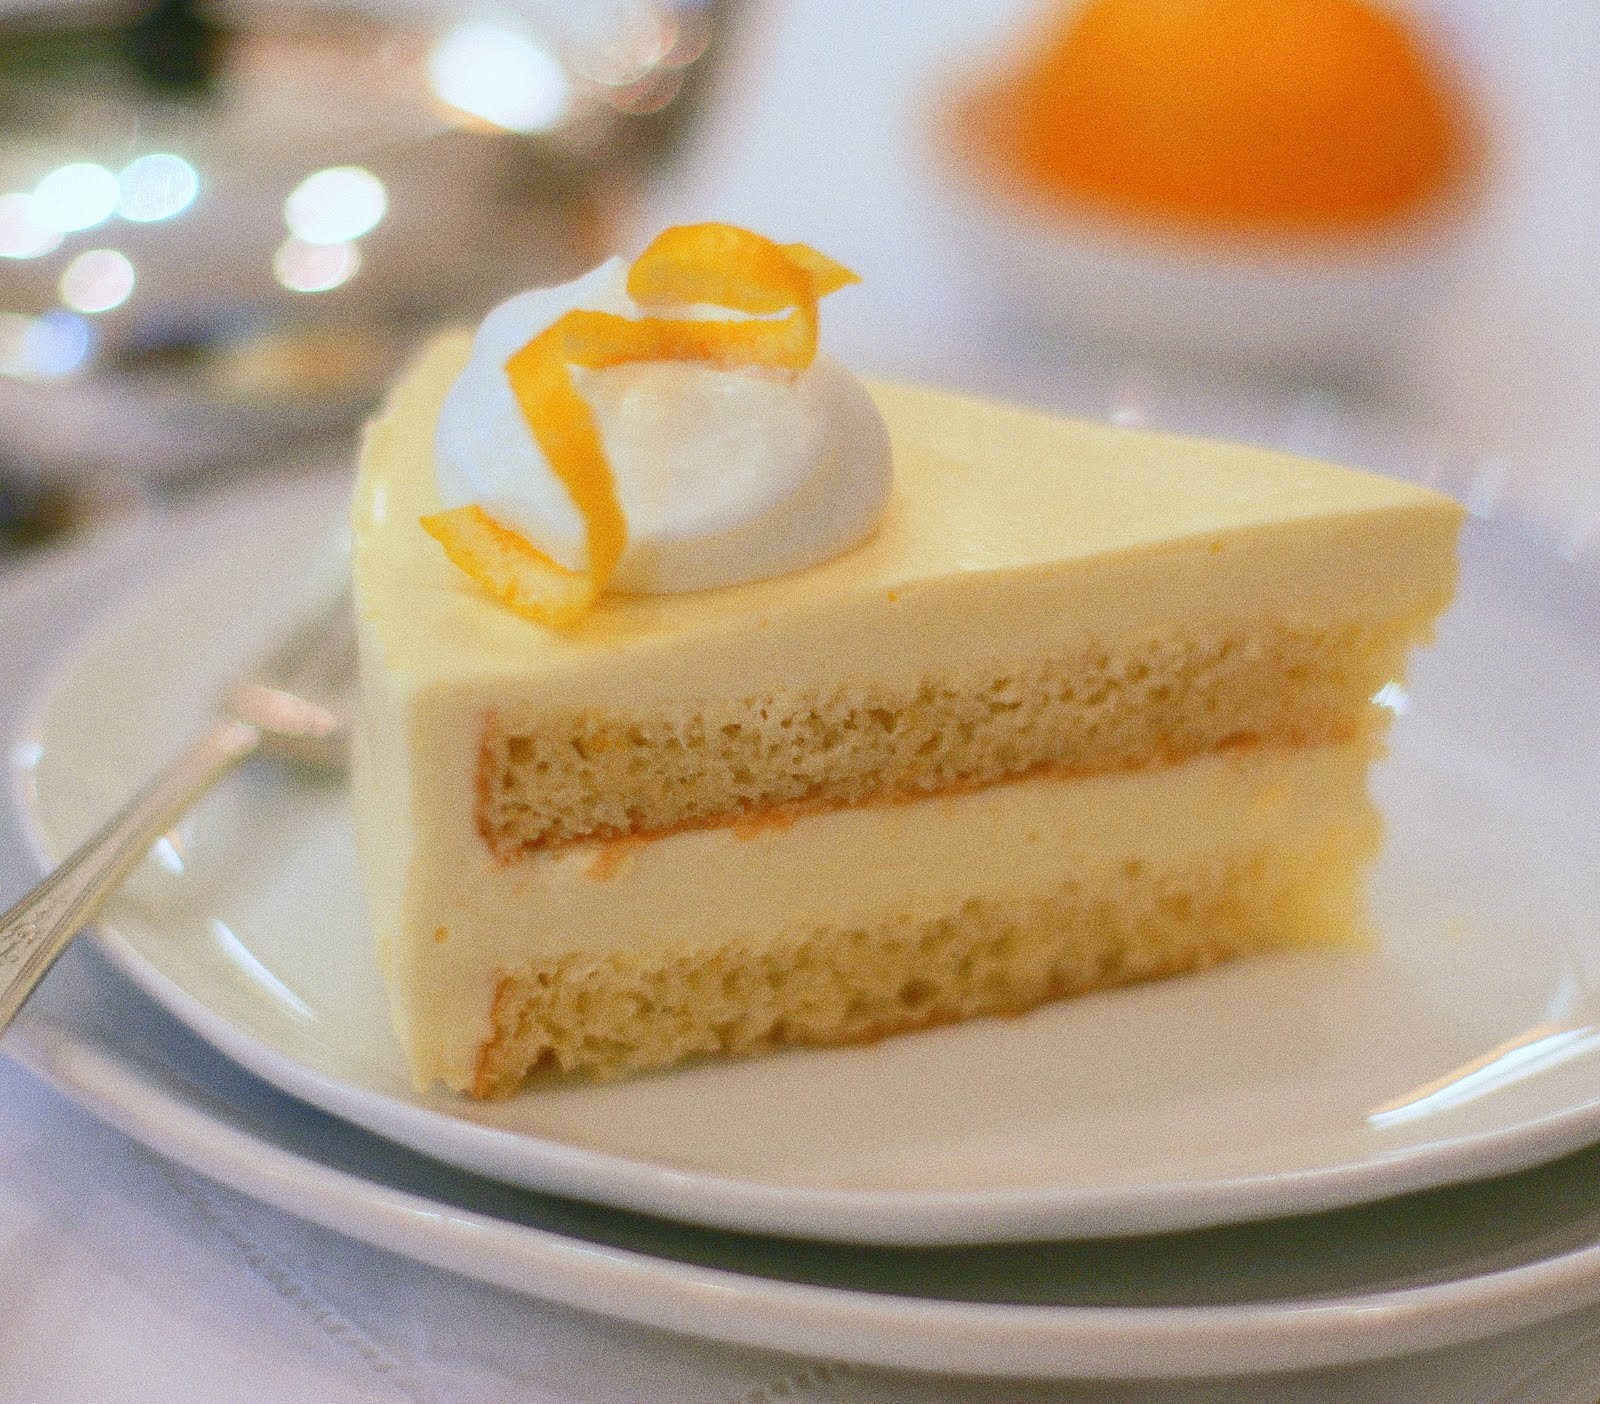 Tish Boyle Sweet Dreams: Meyer Lemon Mousse Cake